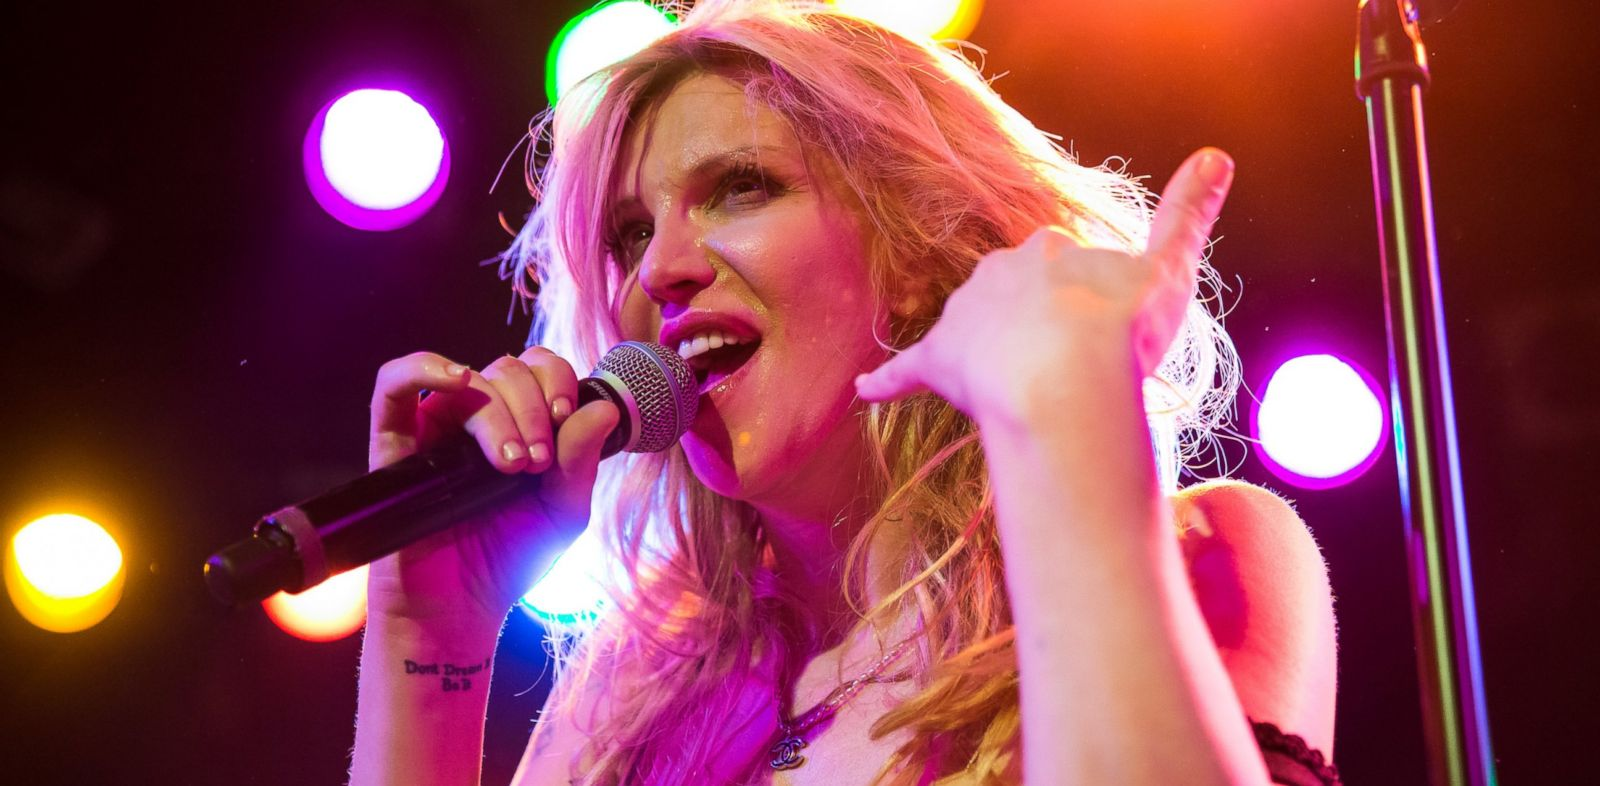 PHOTO: In this file photo, Courtney Love performs on Dec. 31, 2013 in West Hollywood, Calif.